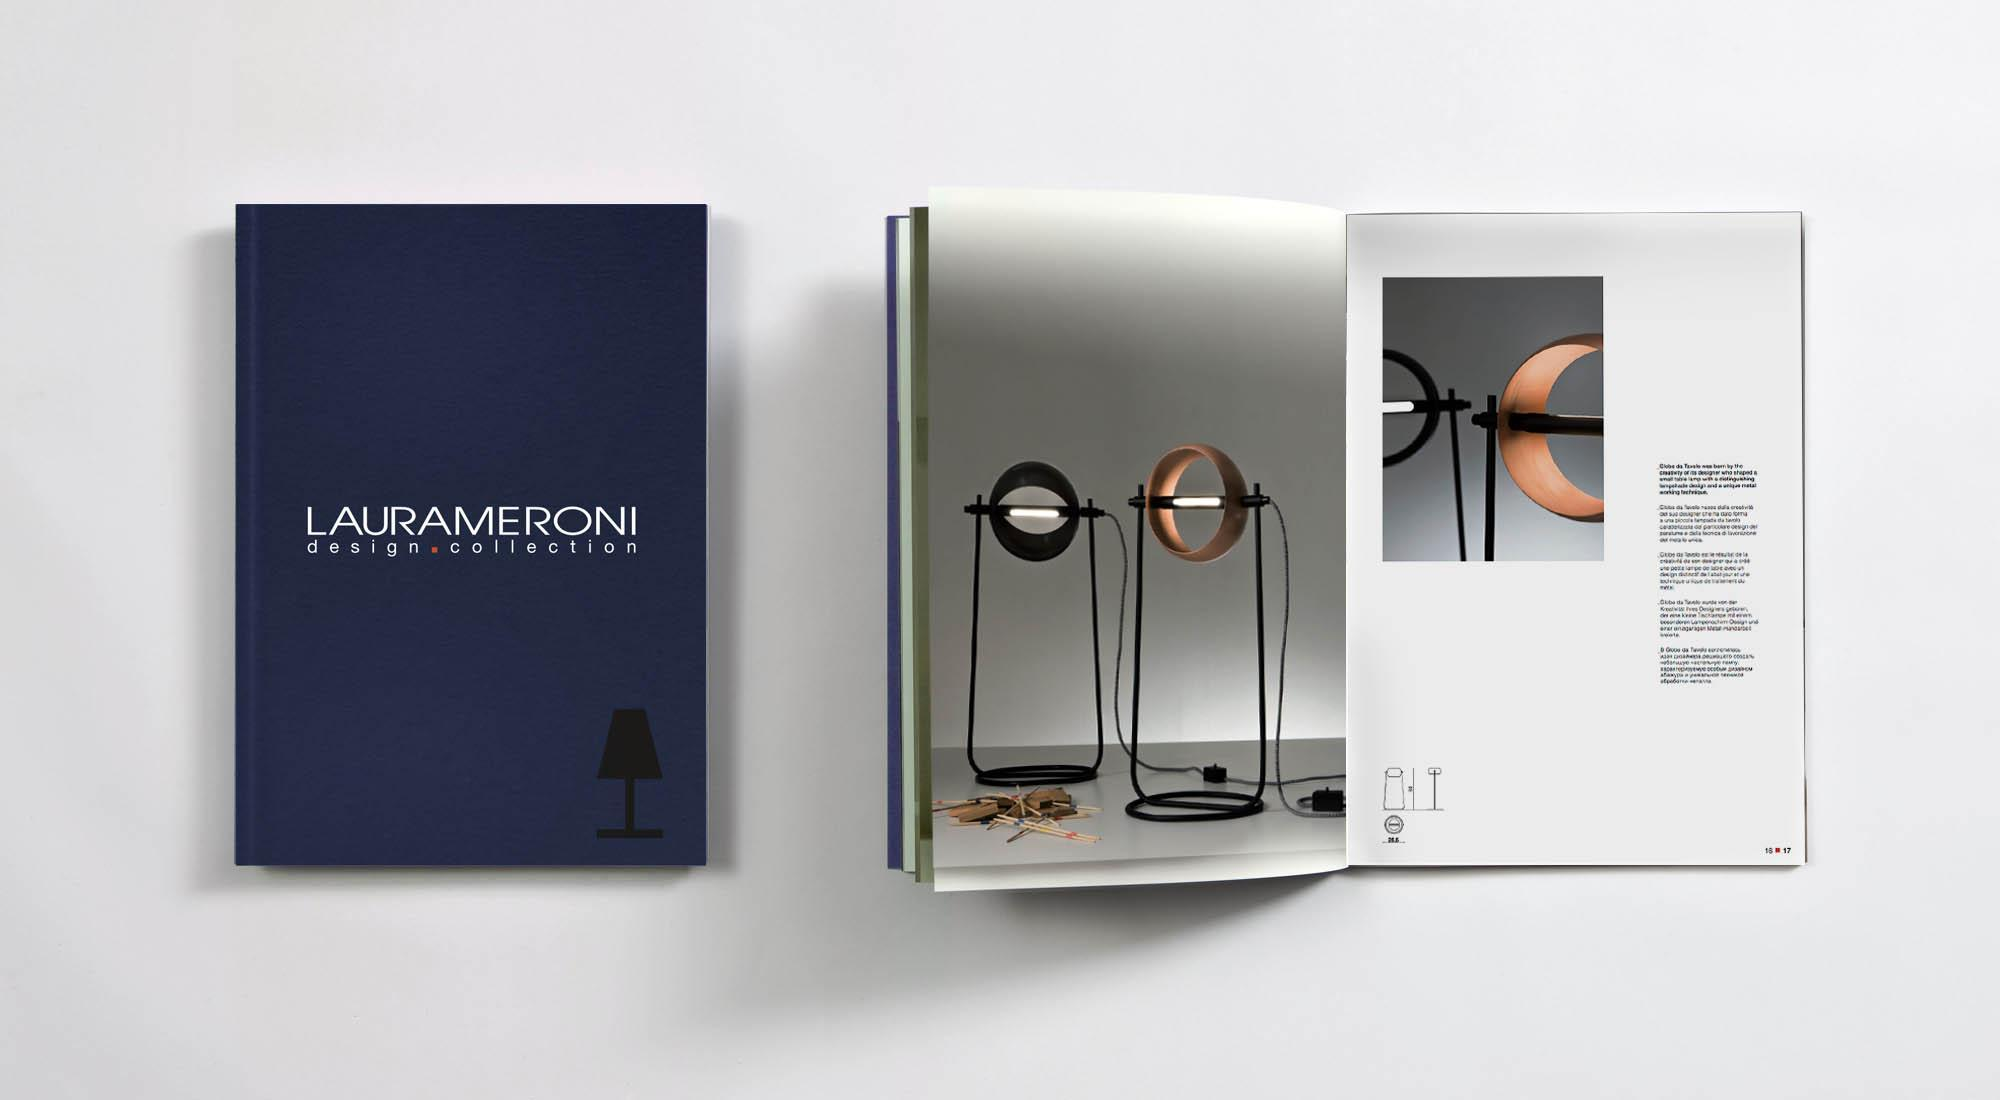 laurameroni design collection luxury lighting catalogue free download